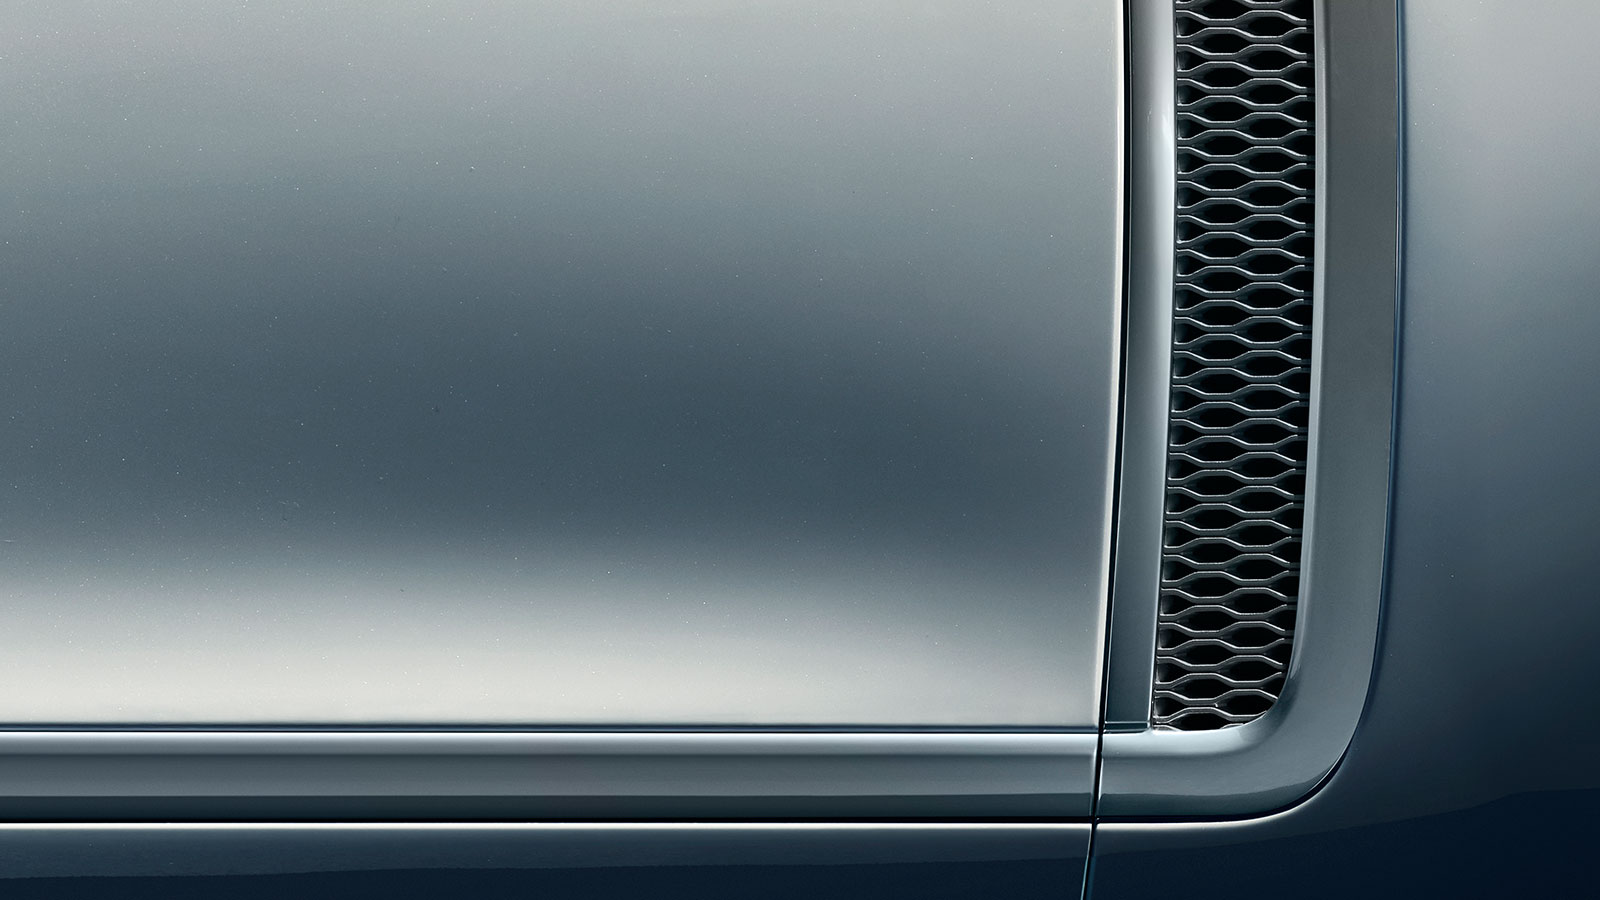 The Range Rover SV Coupé Valloire White Contour Graphic side vent close up